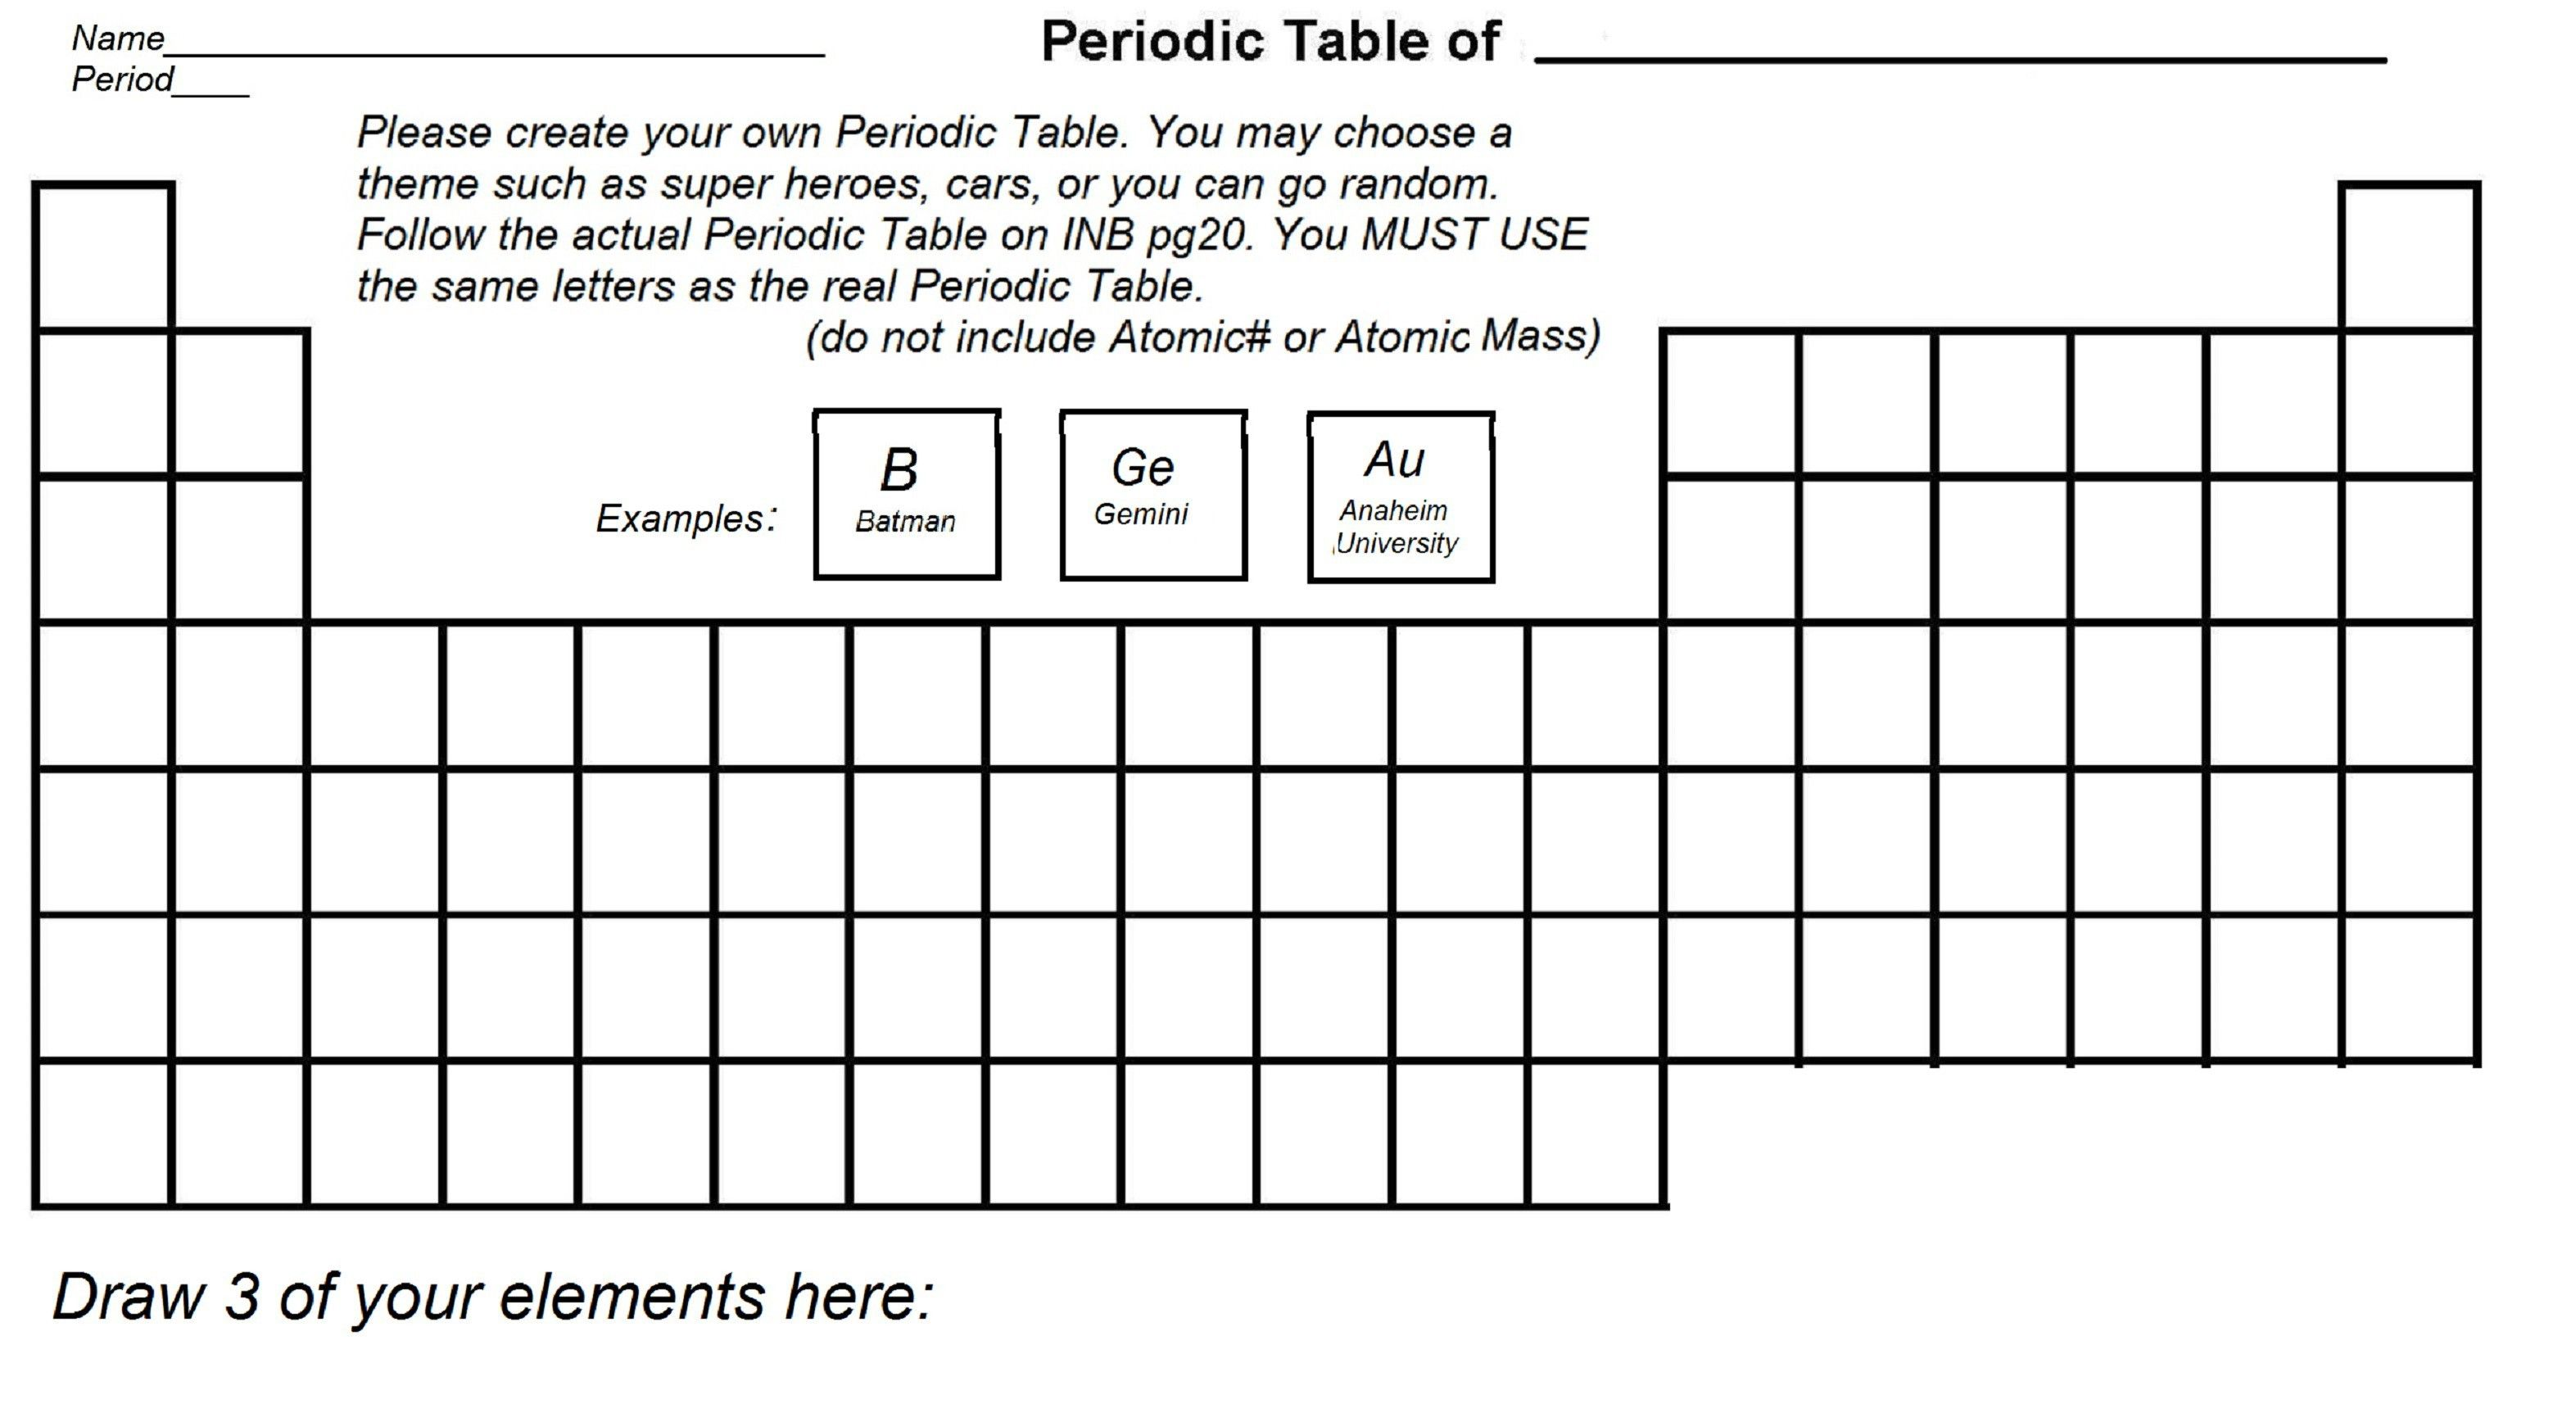 small resolution of Blank Periodic Table With Elements #BlankPeriodicTable #PeriodicTableBlank    Letter recognition worksheets